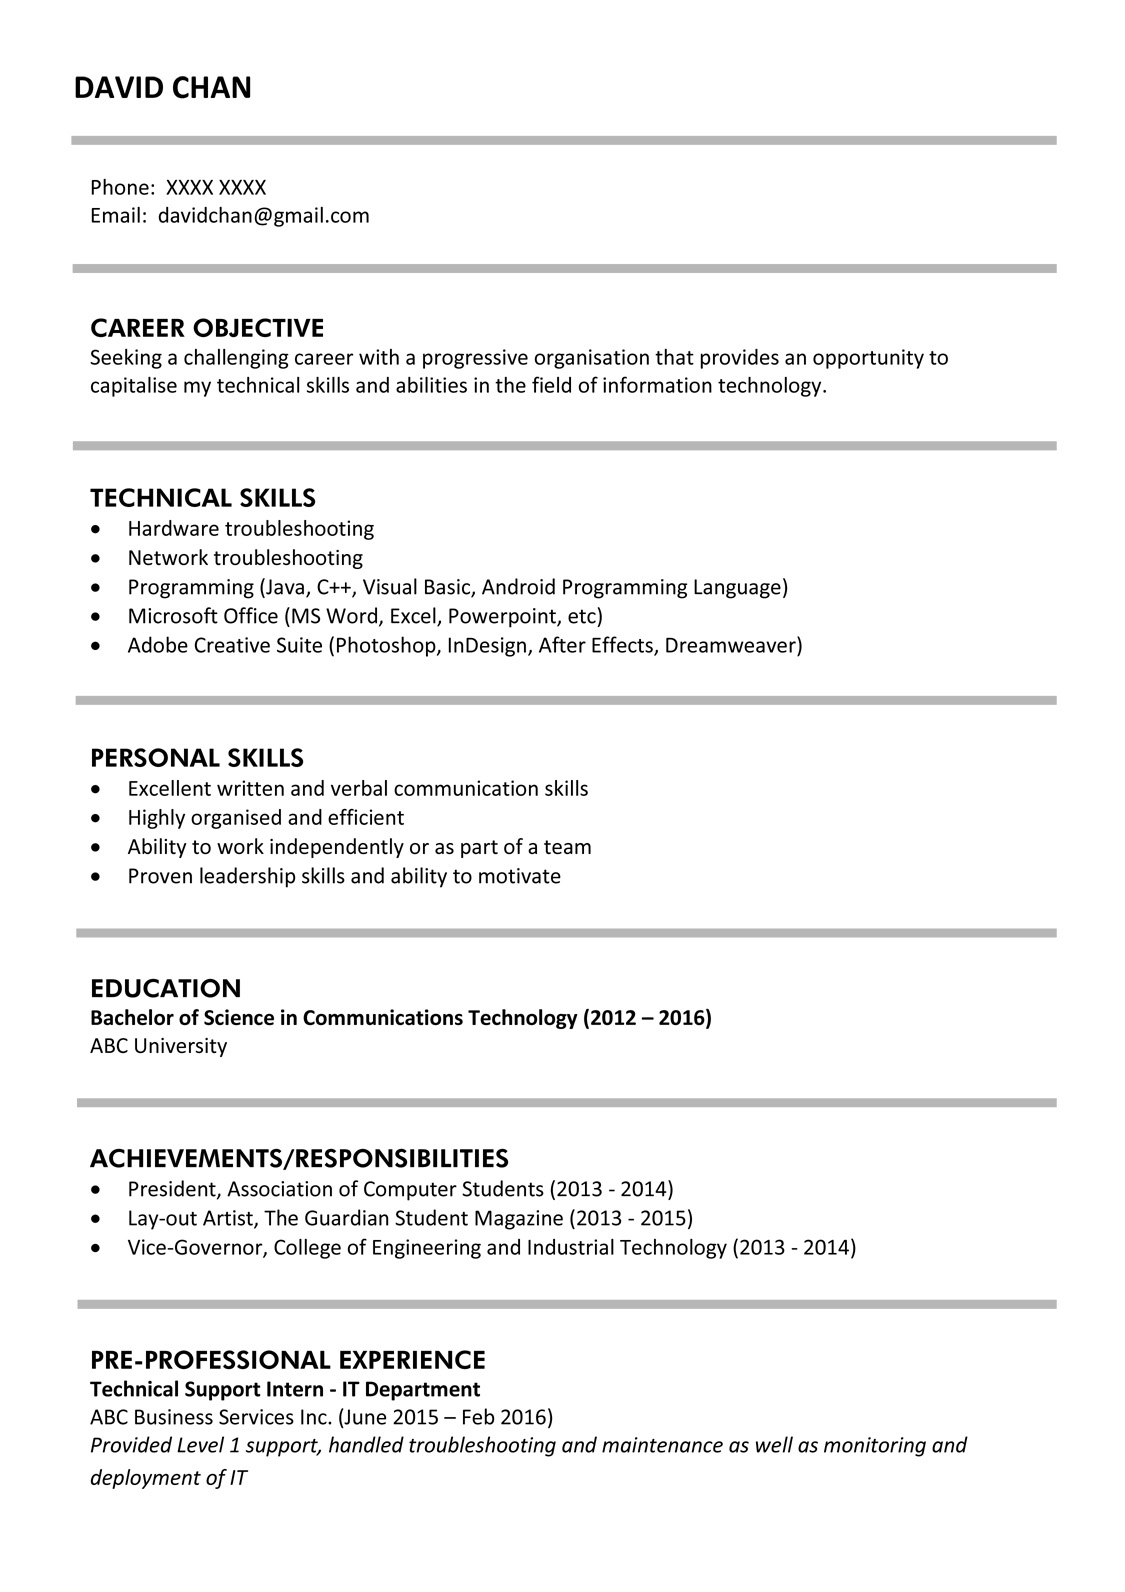 sample resume format 1 - Personal Resume Templates